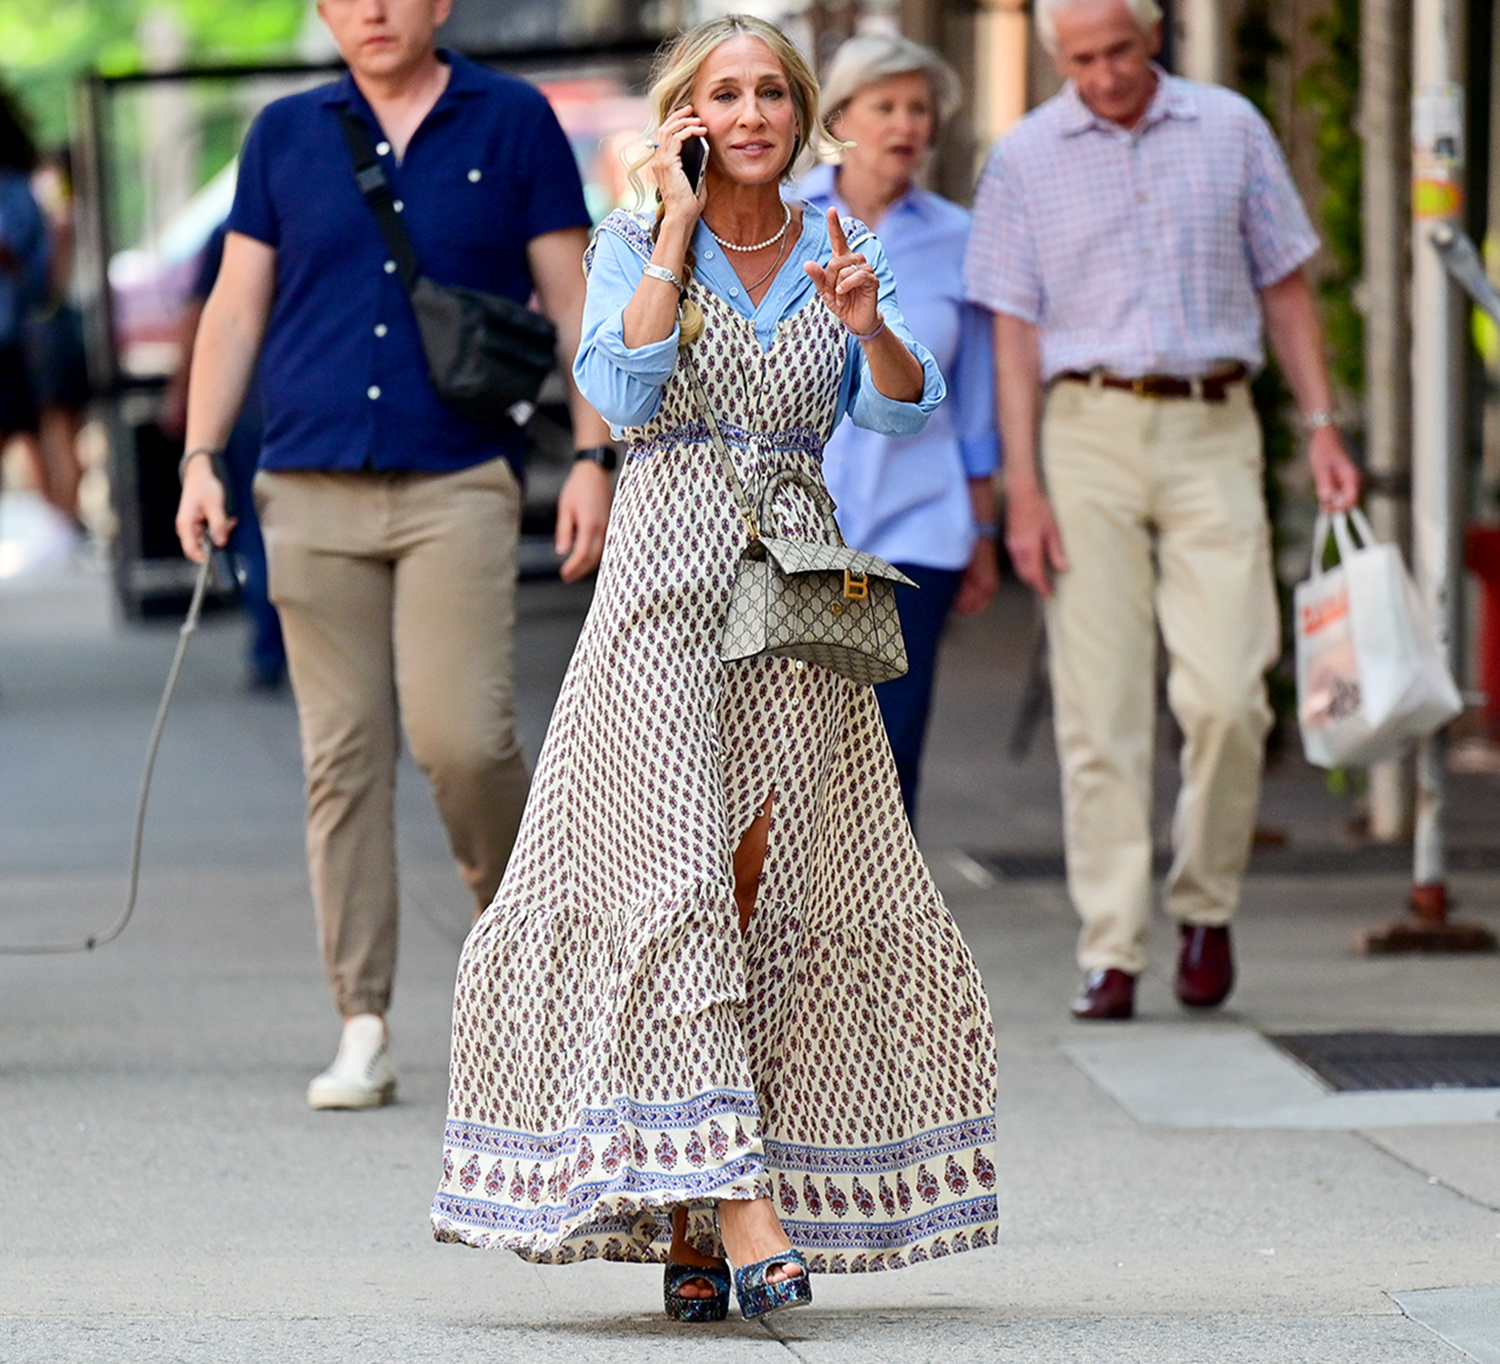 """Sarah Jessica Parker seen on the set of """"And Just Like That..."""" the follow up series to """"Sex and the City"""" on the Upper West Side on July 27, 2021 in New York City."""